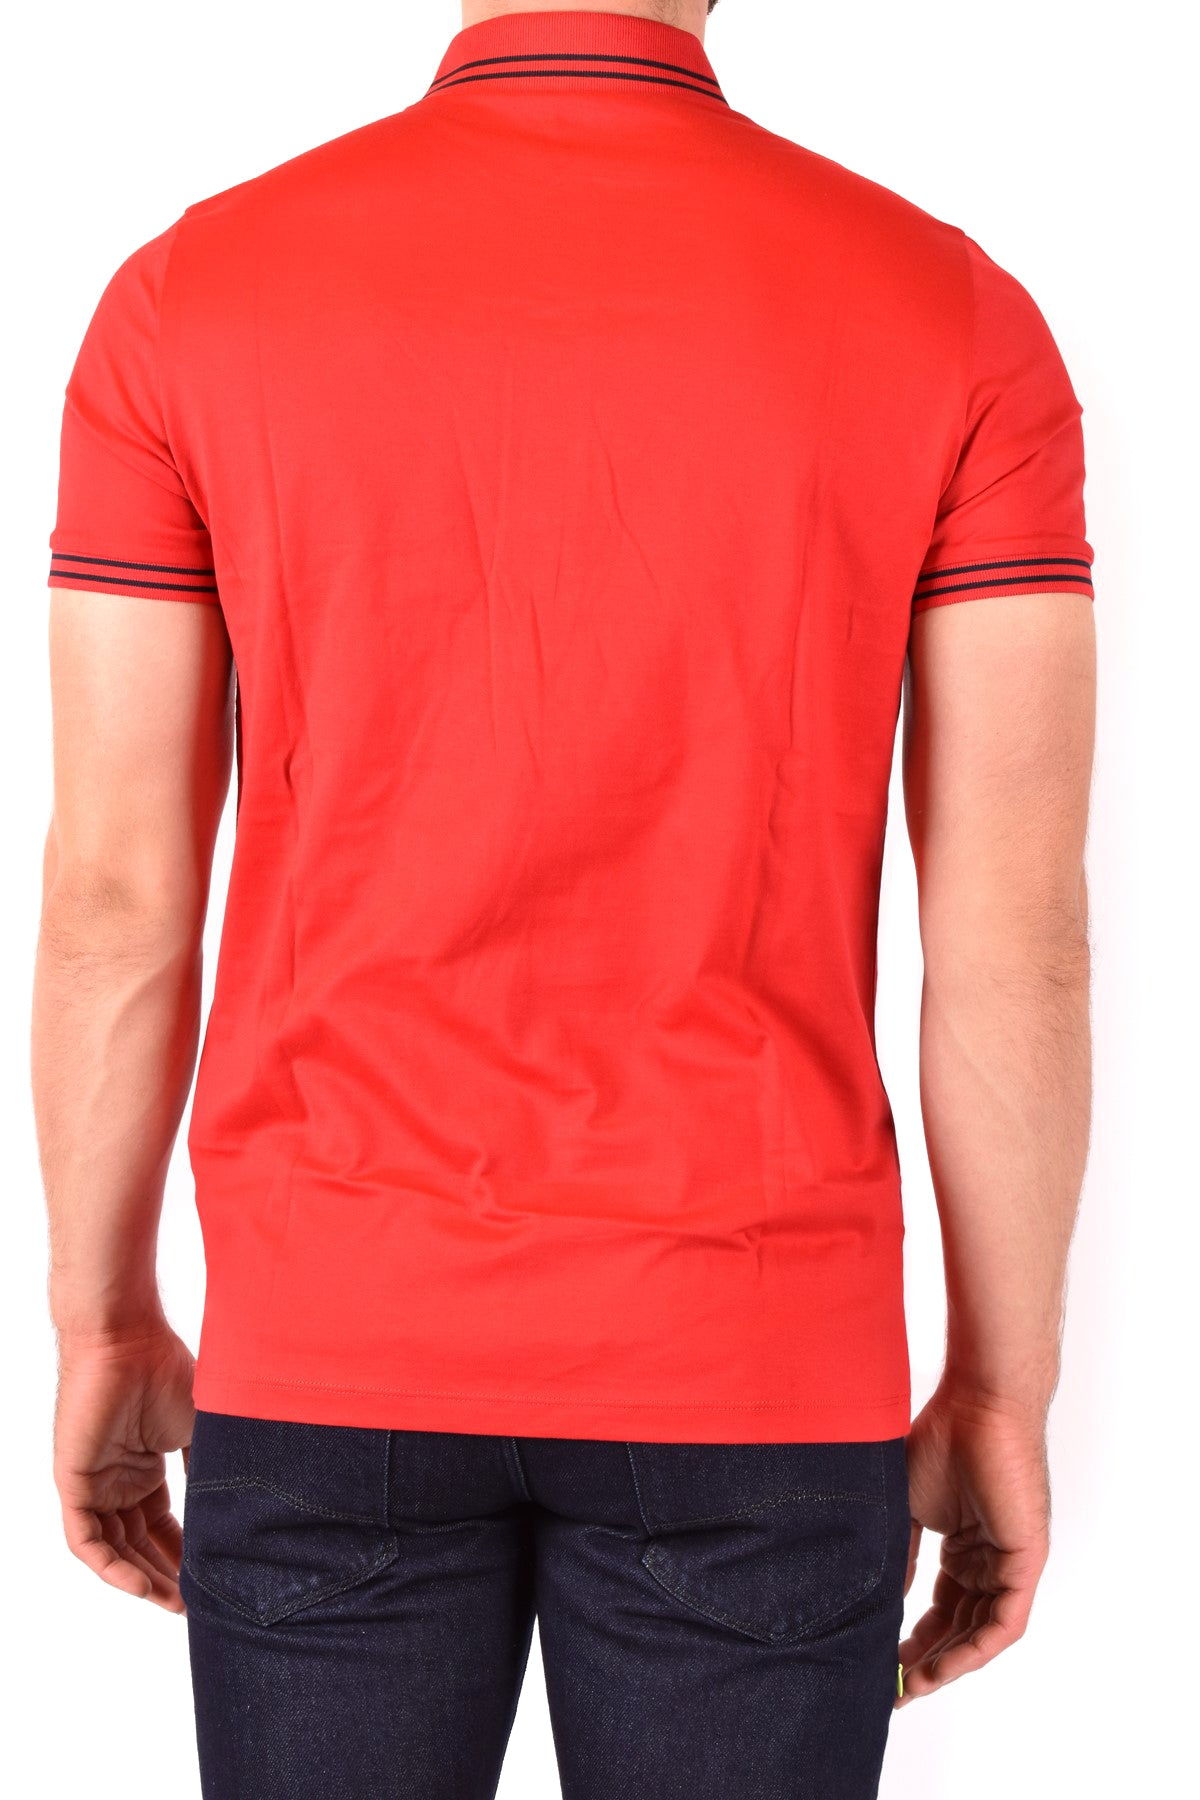 Polo Emporio Armani-Men's Fashion - Men's Clothing - Tops & Tees - Polo-Product Details Terms: New With LabelClothing Type: PoleMain Color: RedSeason: Spring / SummerMade In: VietnamGender: ManSize: IntComposition: Cotton 100%Year: 2020Manufacturer Part Number: 3H1Fn4 1Jcqz F320-Keyomi-Sook